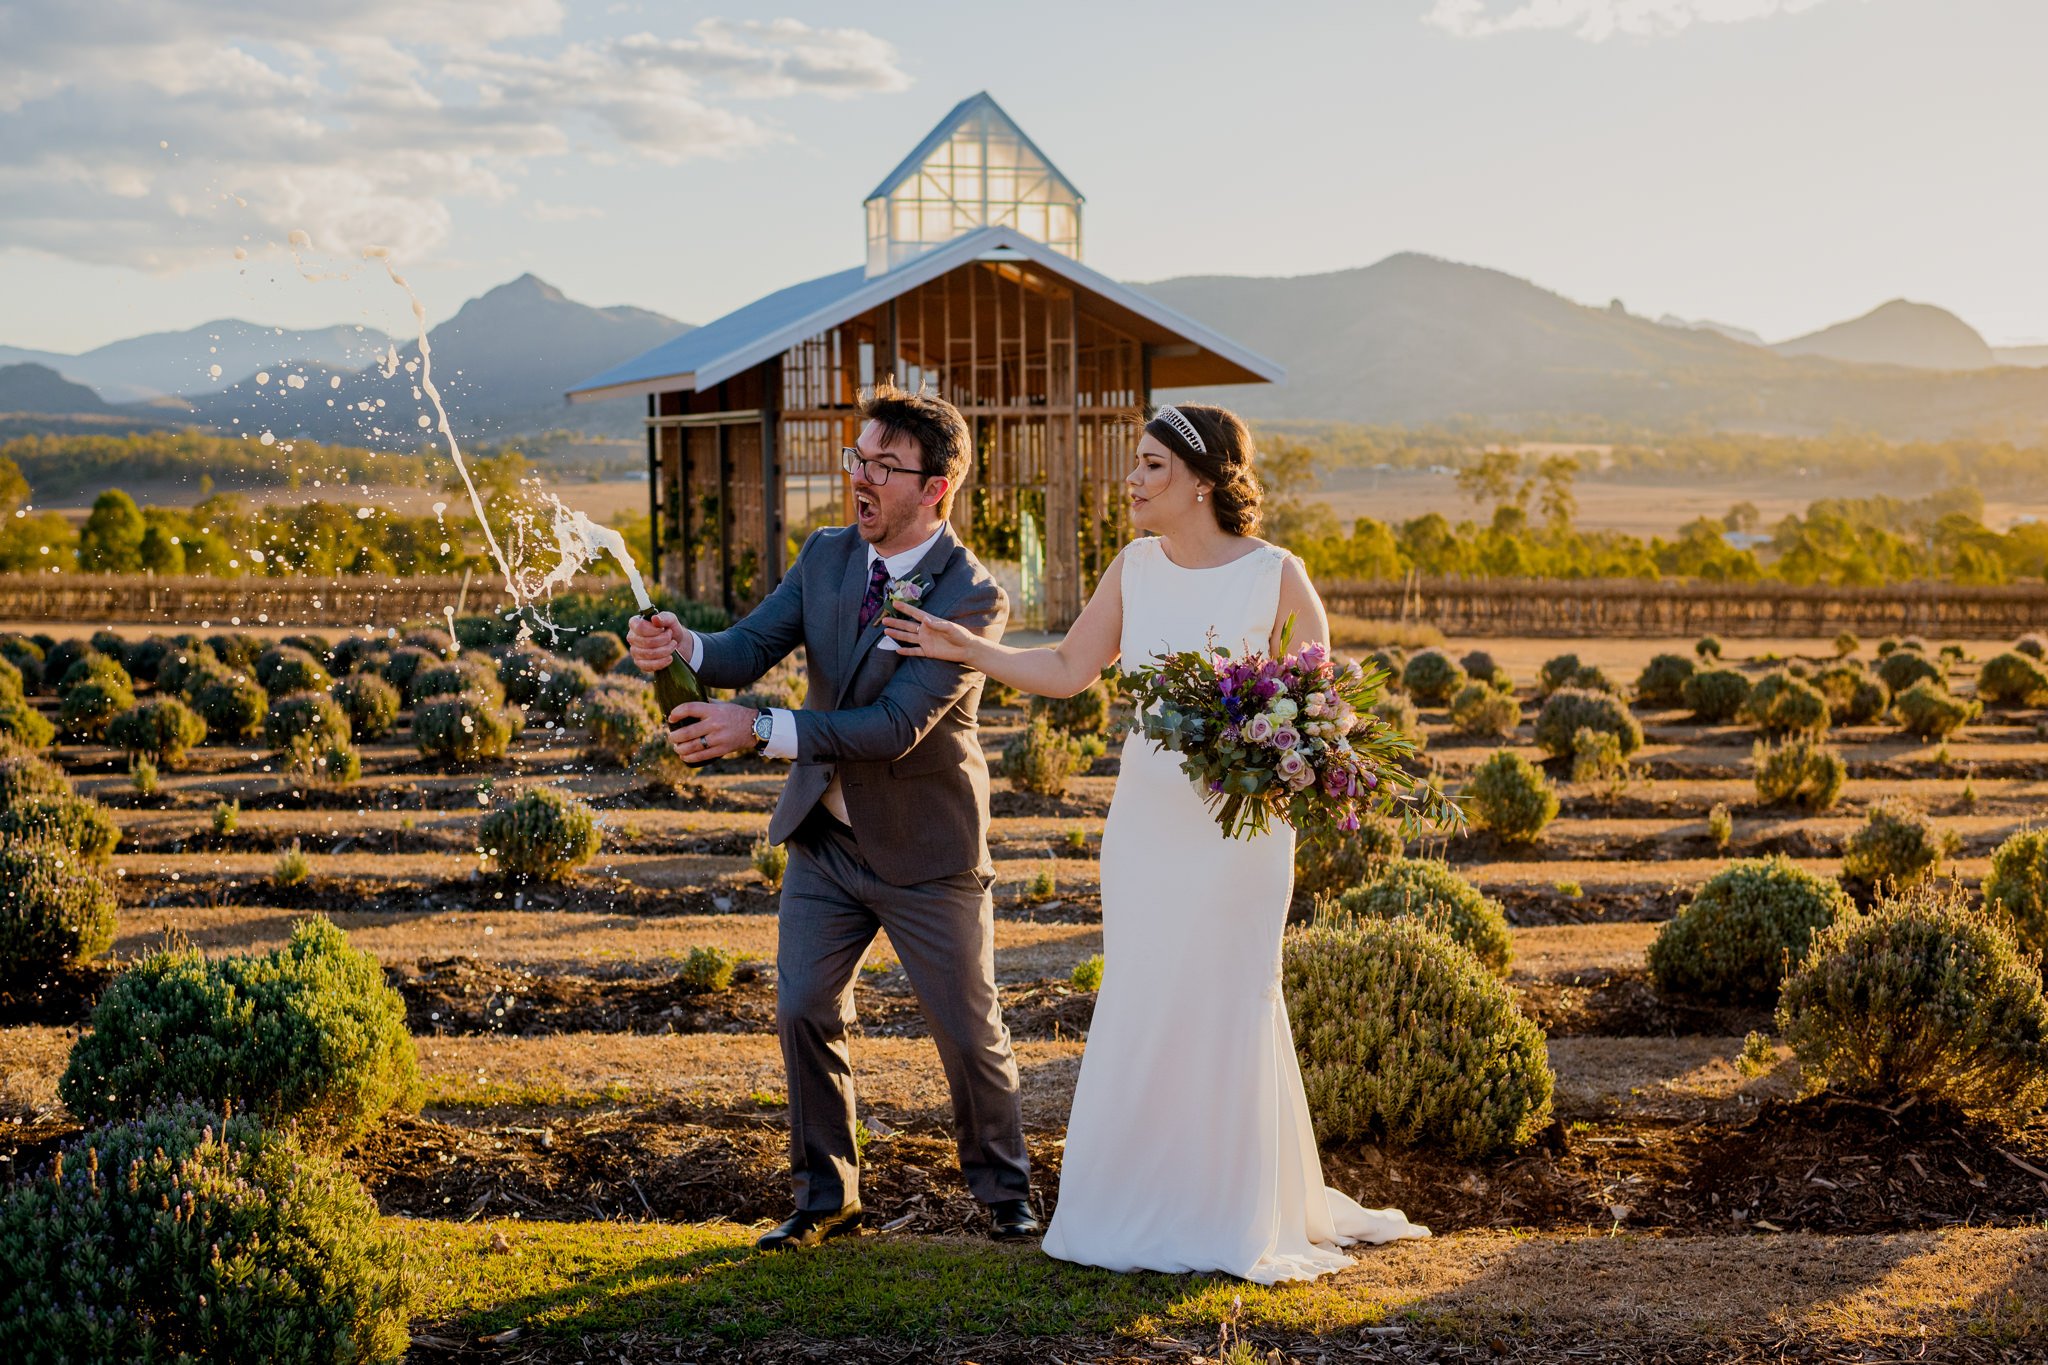 An excited groom sprays champagne as his wife looks worried at Kooroomba Lavender Farm